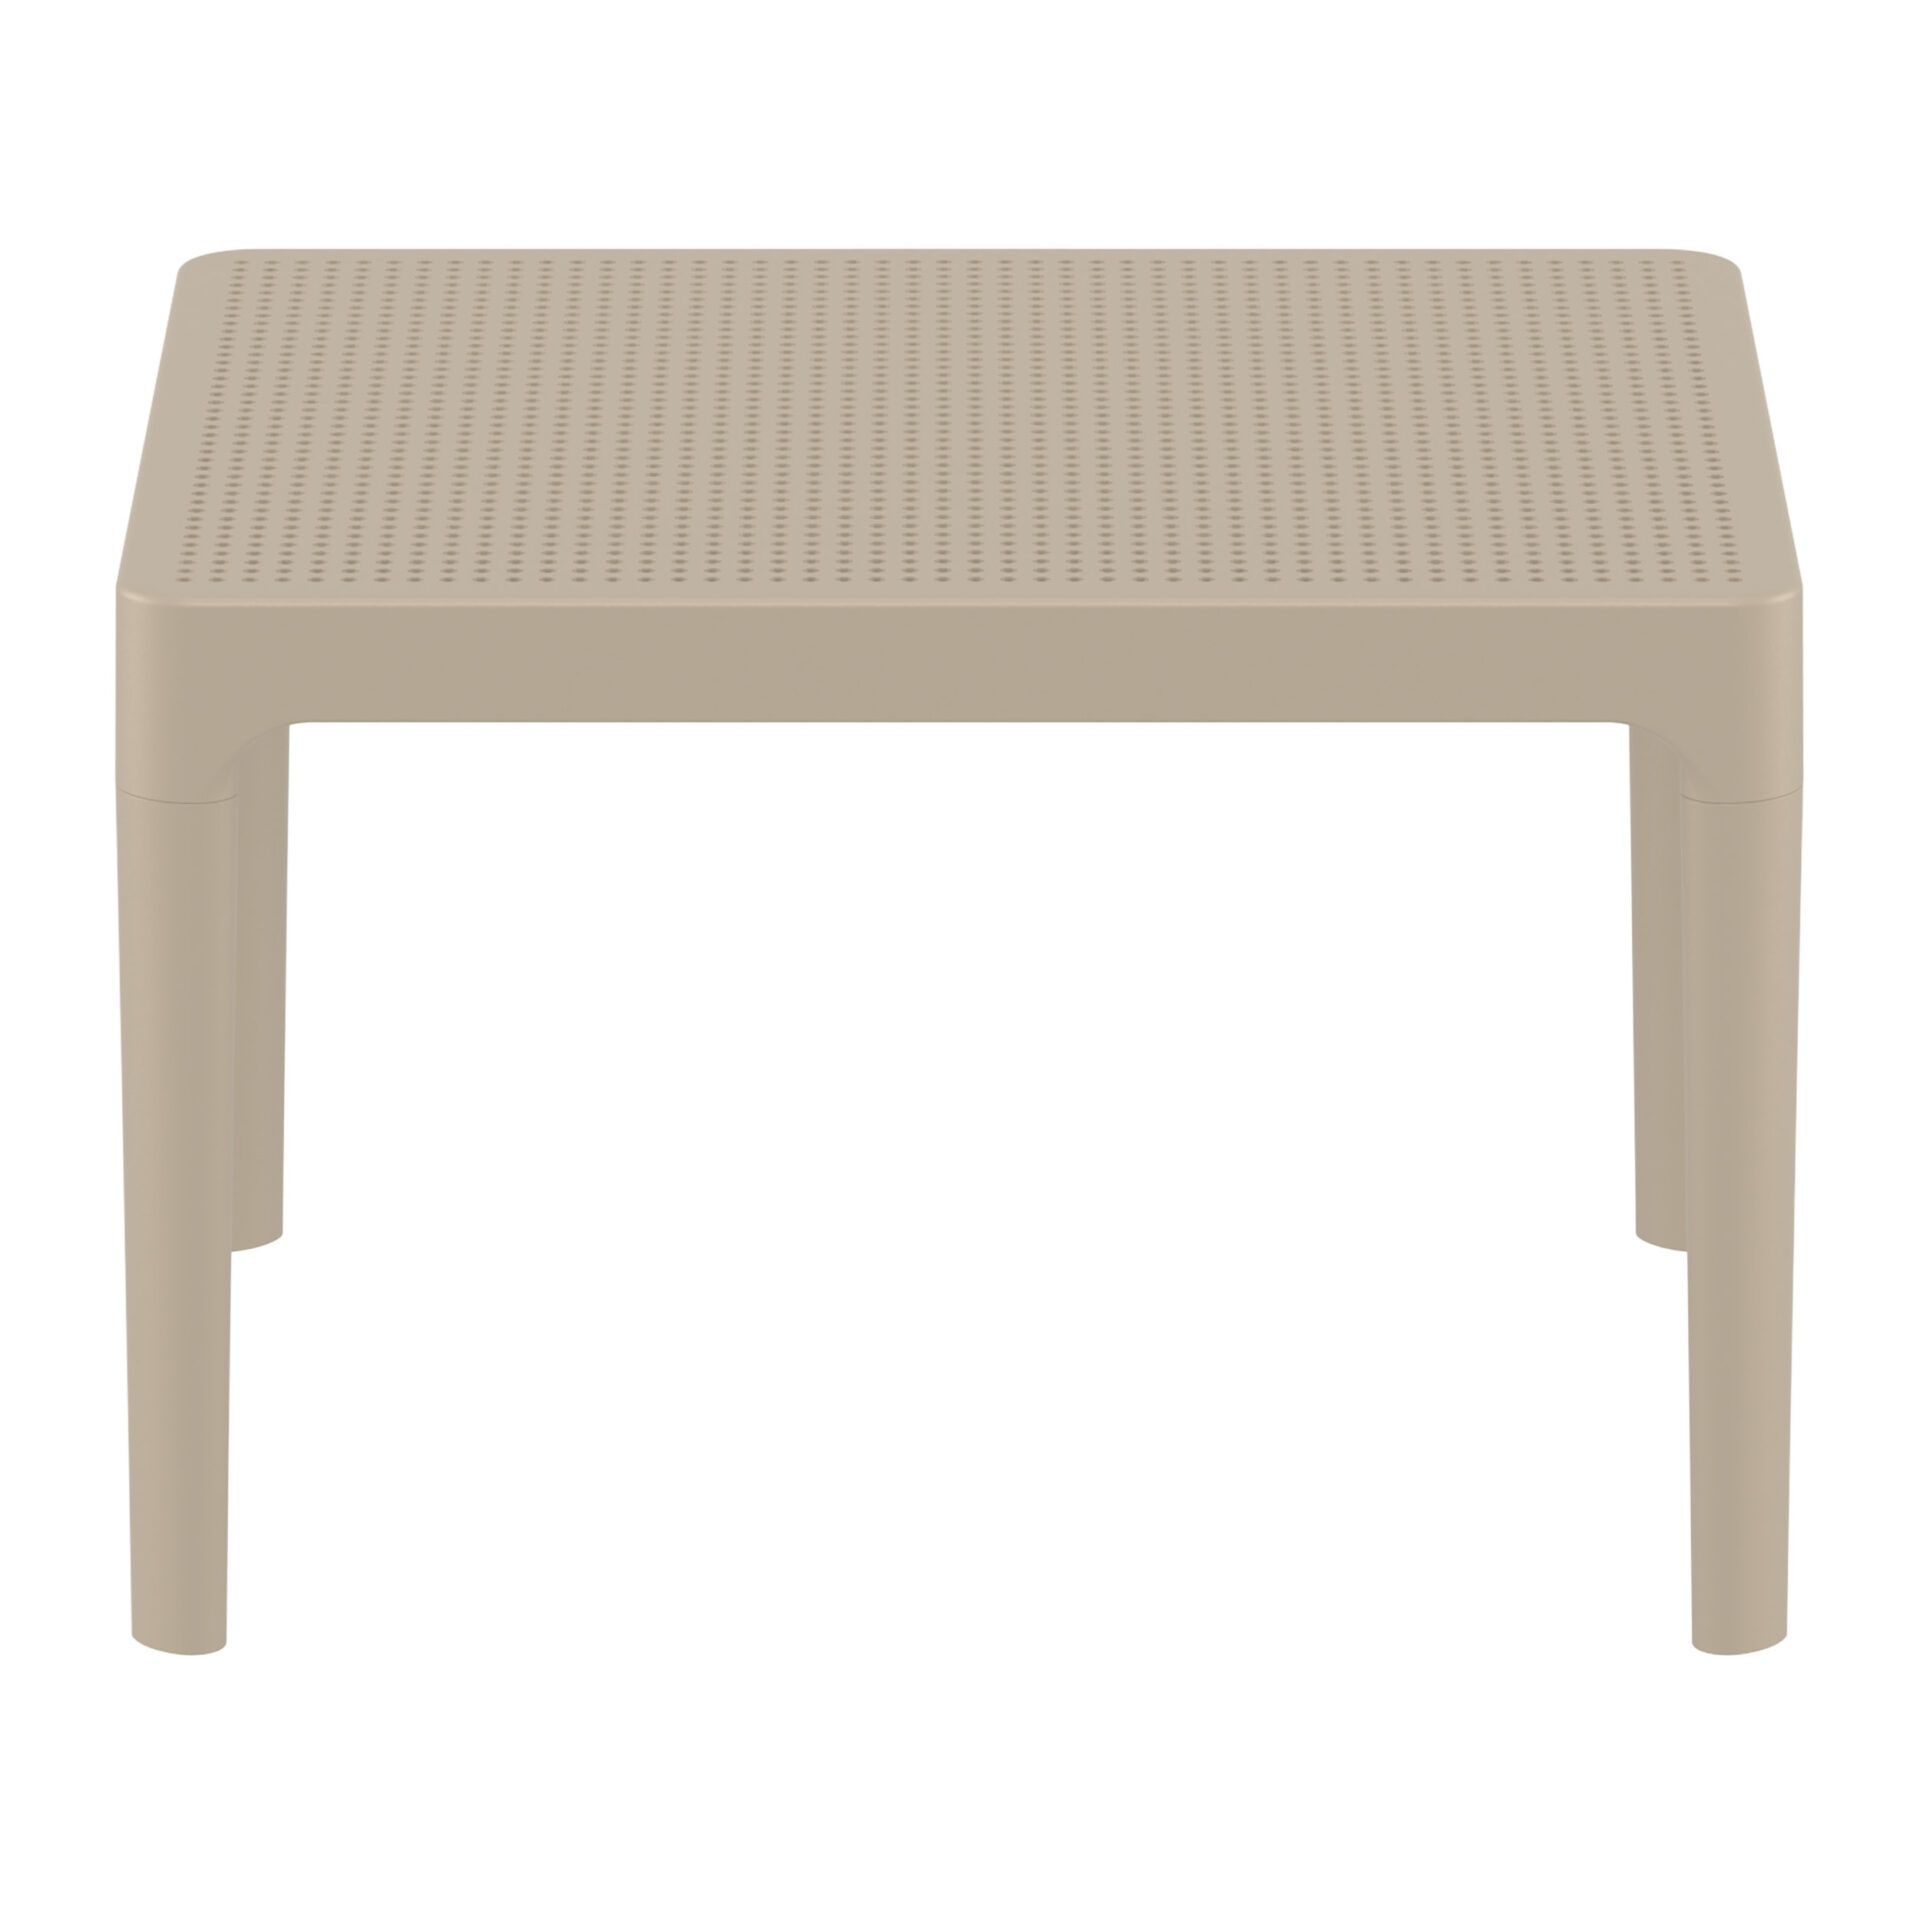 polypropylene outdoor sky side table taupe long edge